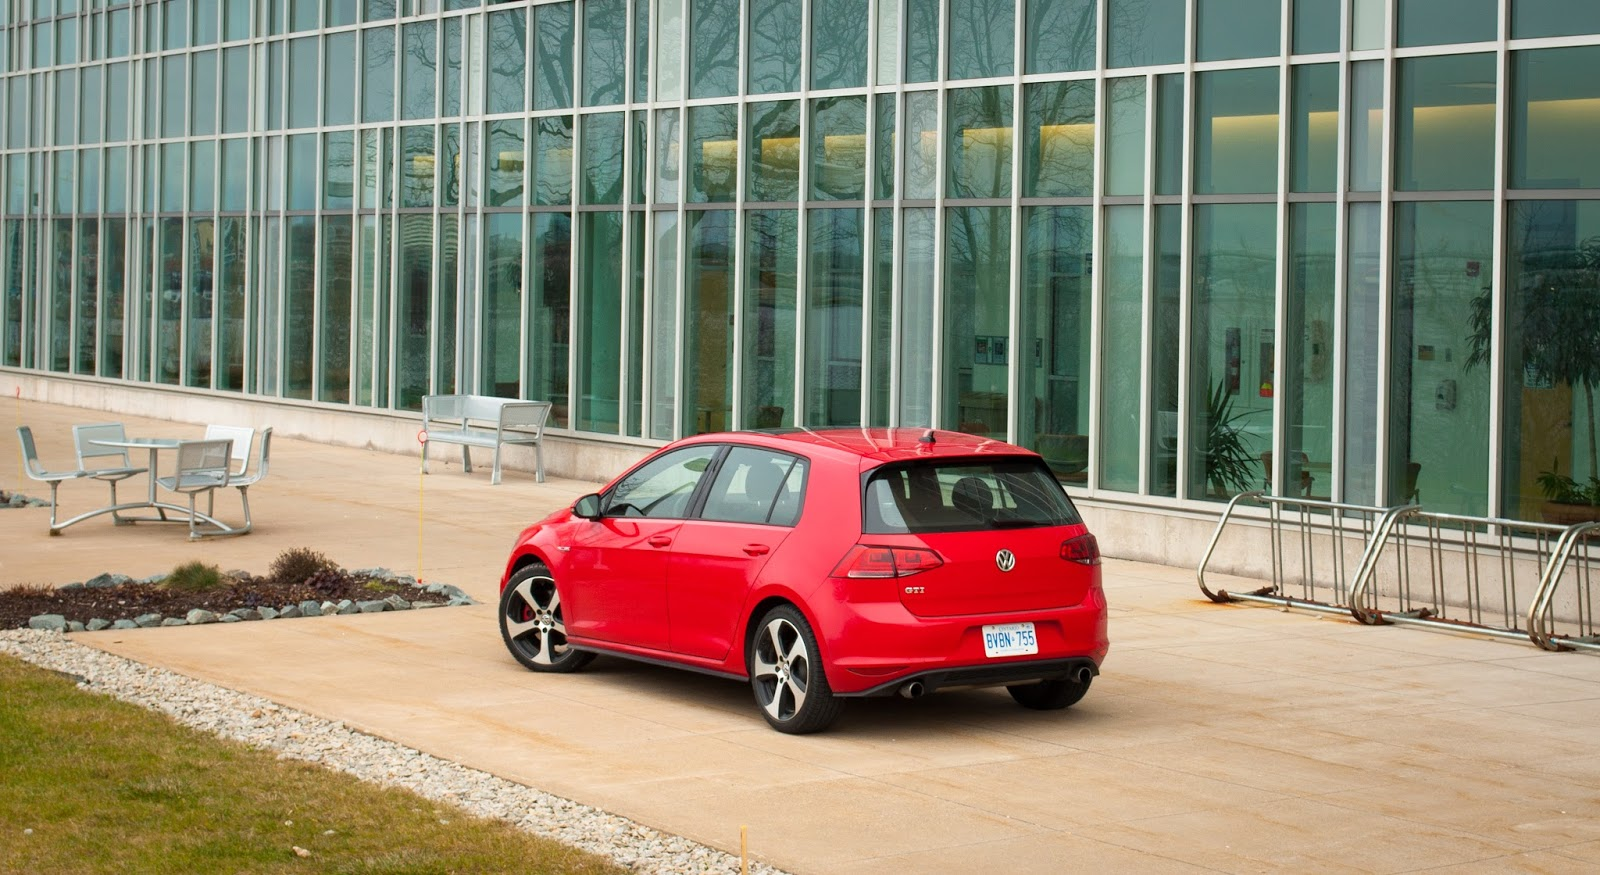 2015 Volkswagen Golf GTI red rear